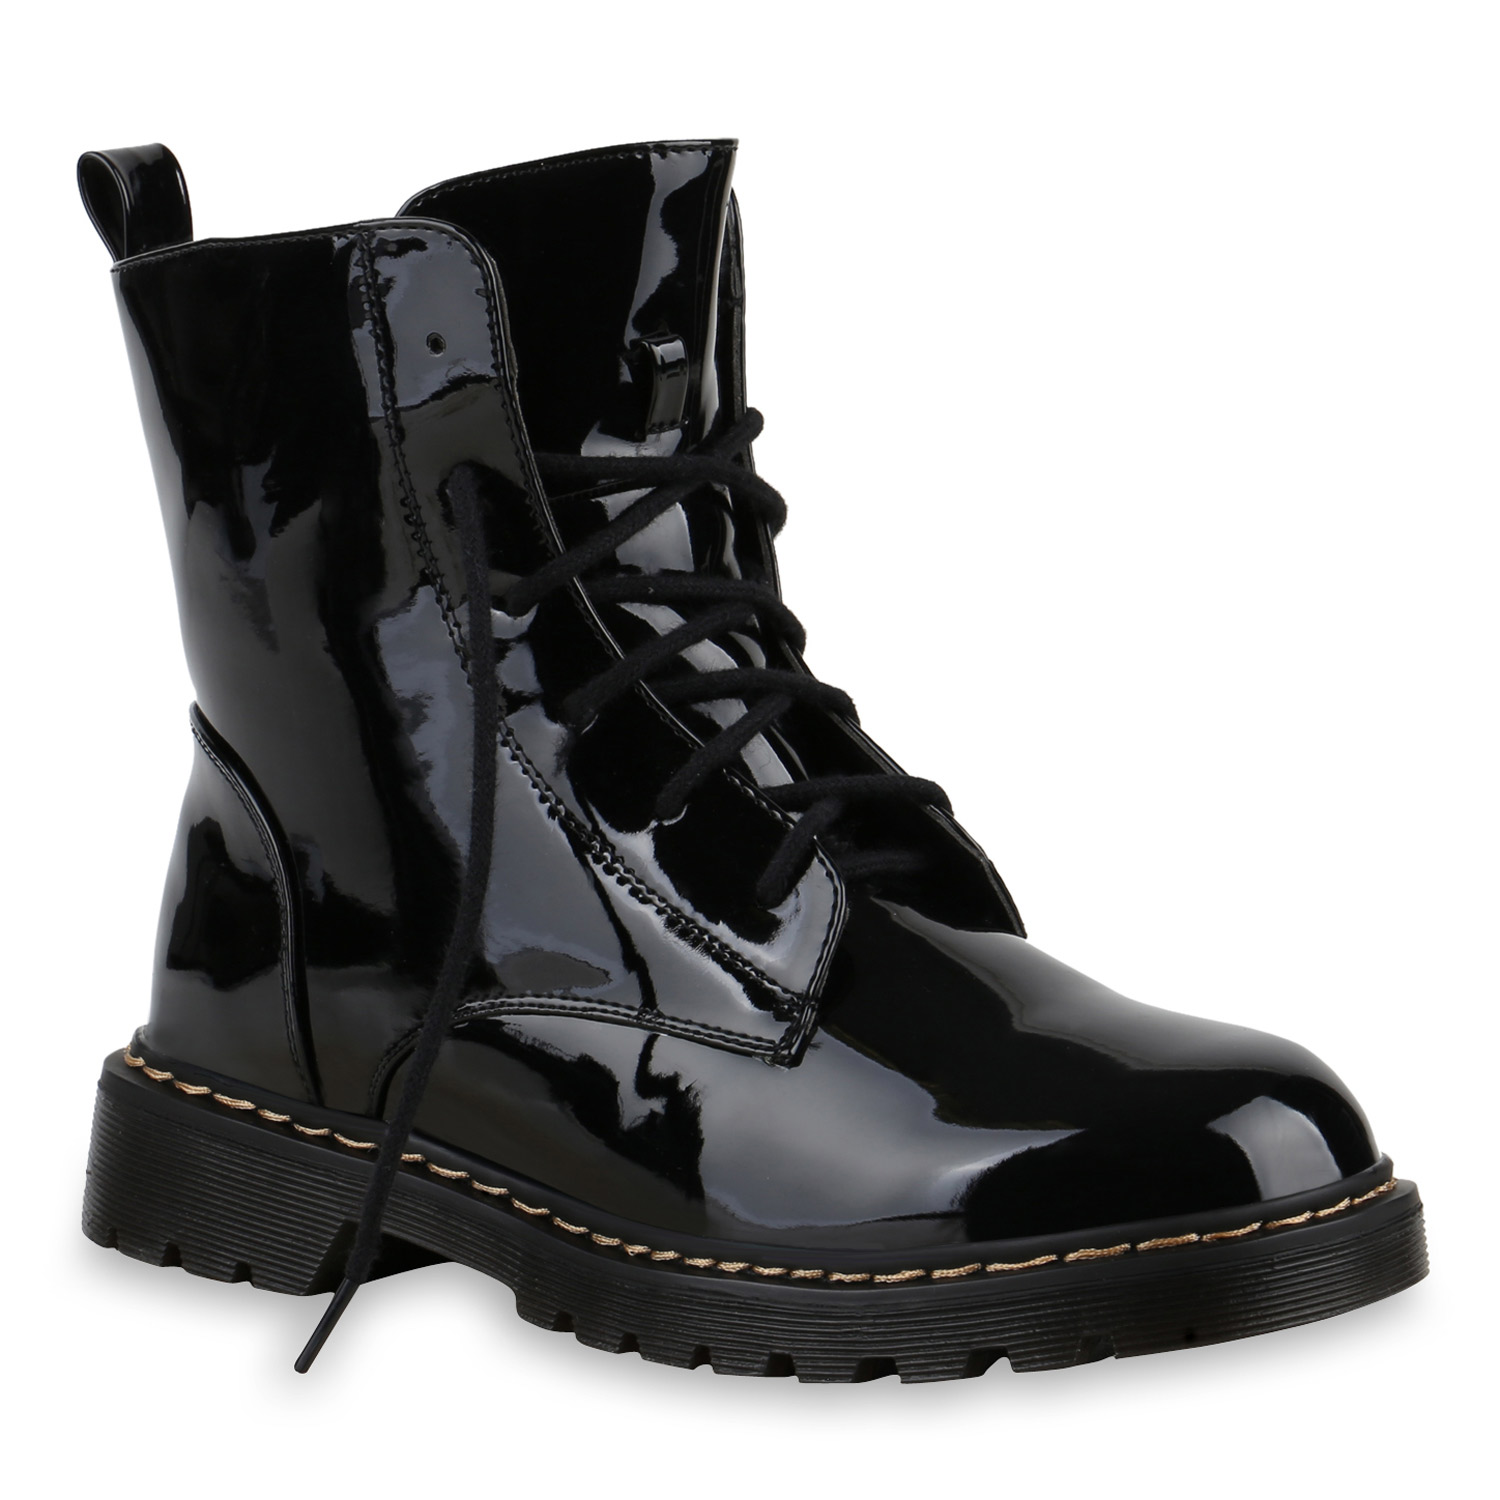 damen stiefeletten lack schn rstiefeletten worker boots schuhe 814058 ebay. Black Bedroom Furniture Sets. Home Design Ideas